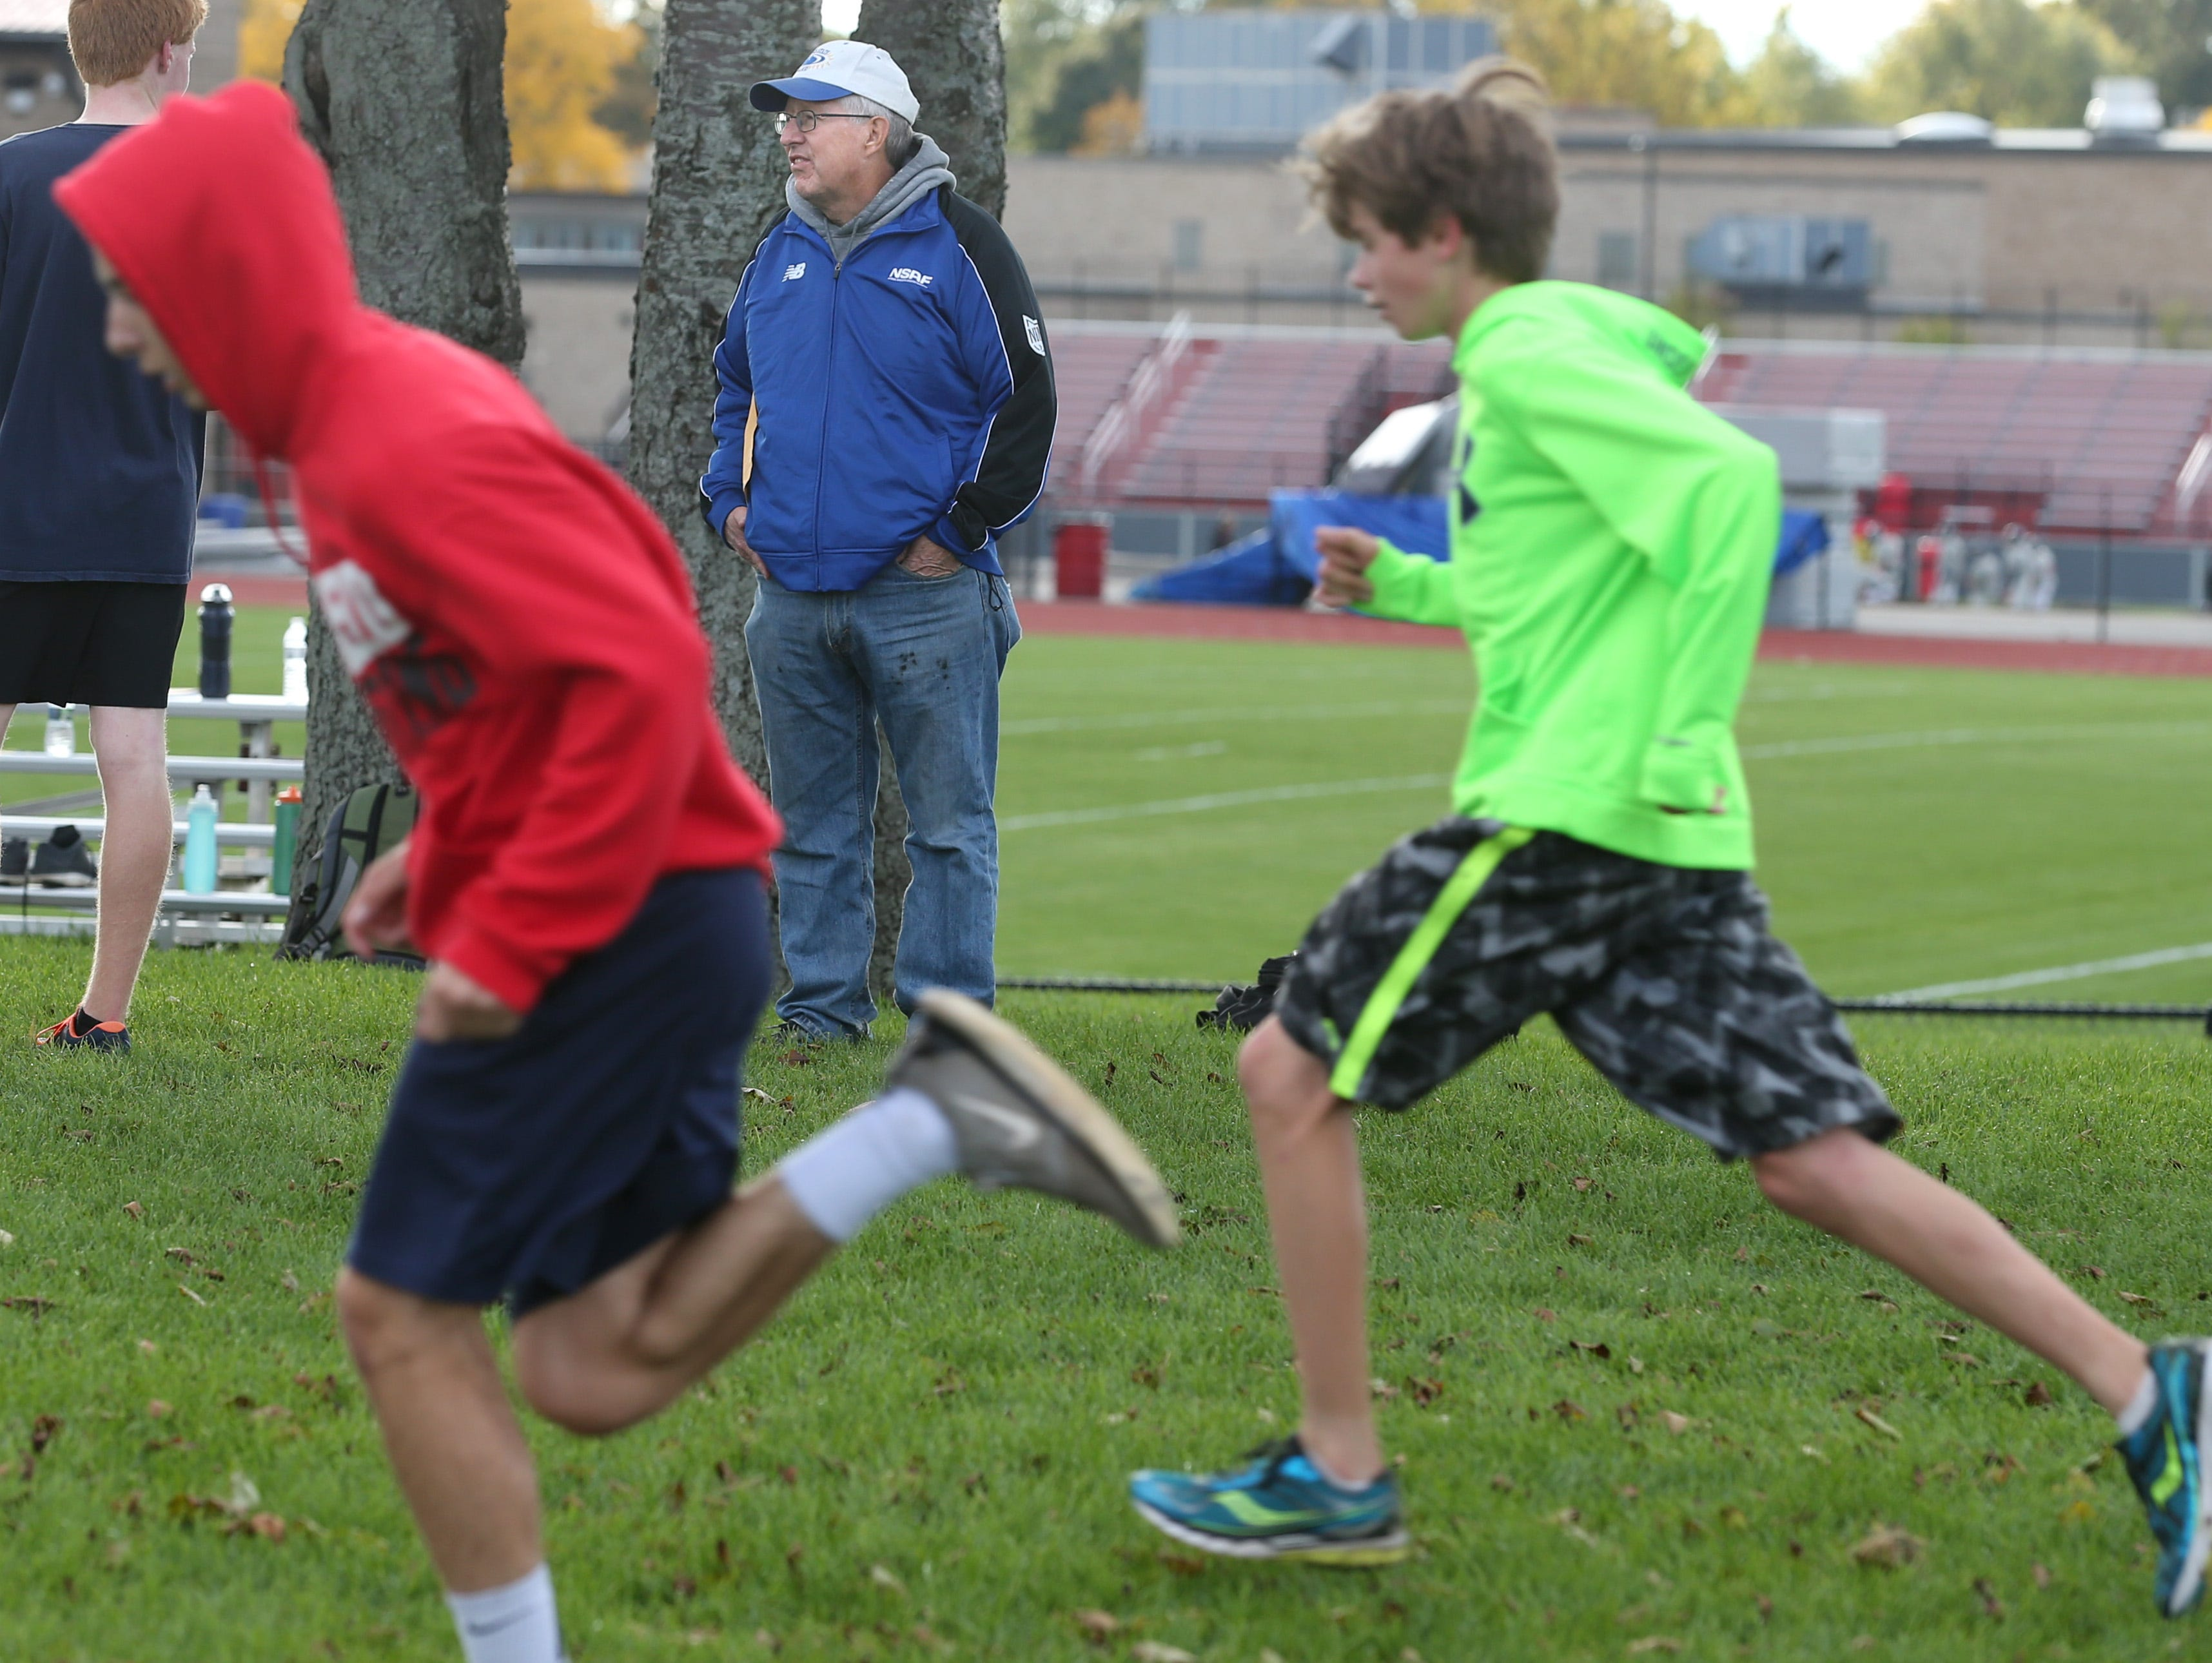 Dave Hennessey, cross country coach at Penfield High School, at practice on Oct. 14, 2015.